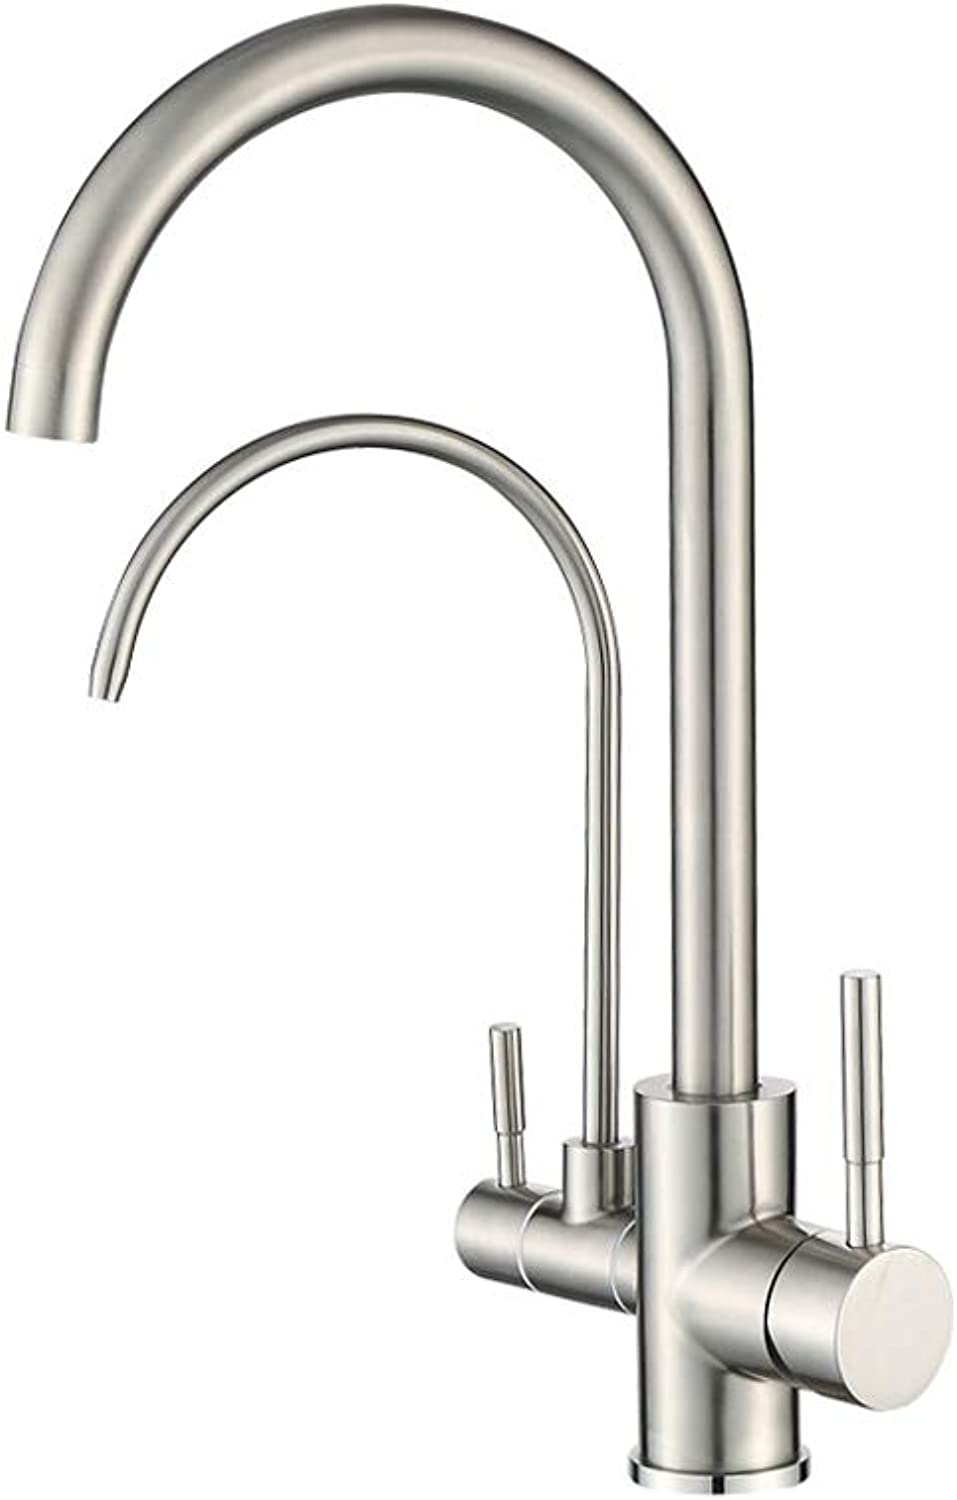 GFFXIXI 3 Way Water Filter Tap Kitchen Drinking Taps Sink Mixer Brass Swivel Spout with 2 Handles, Stainless Steel